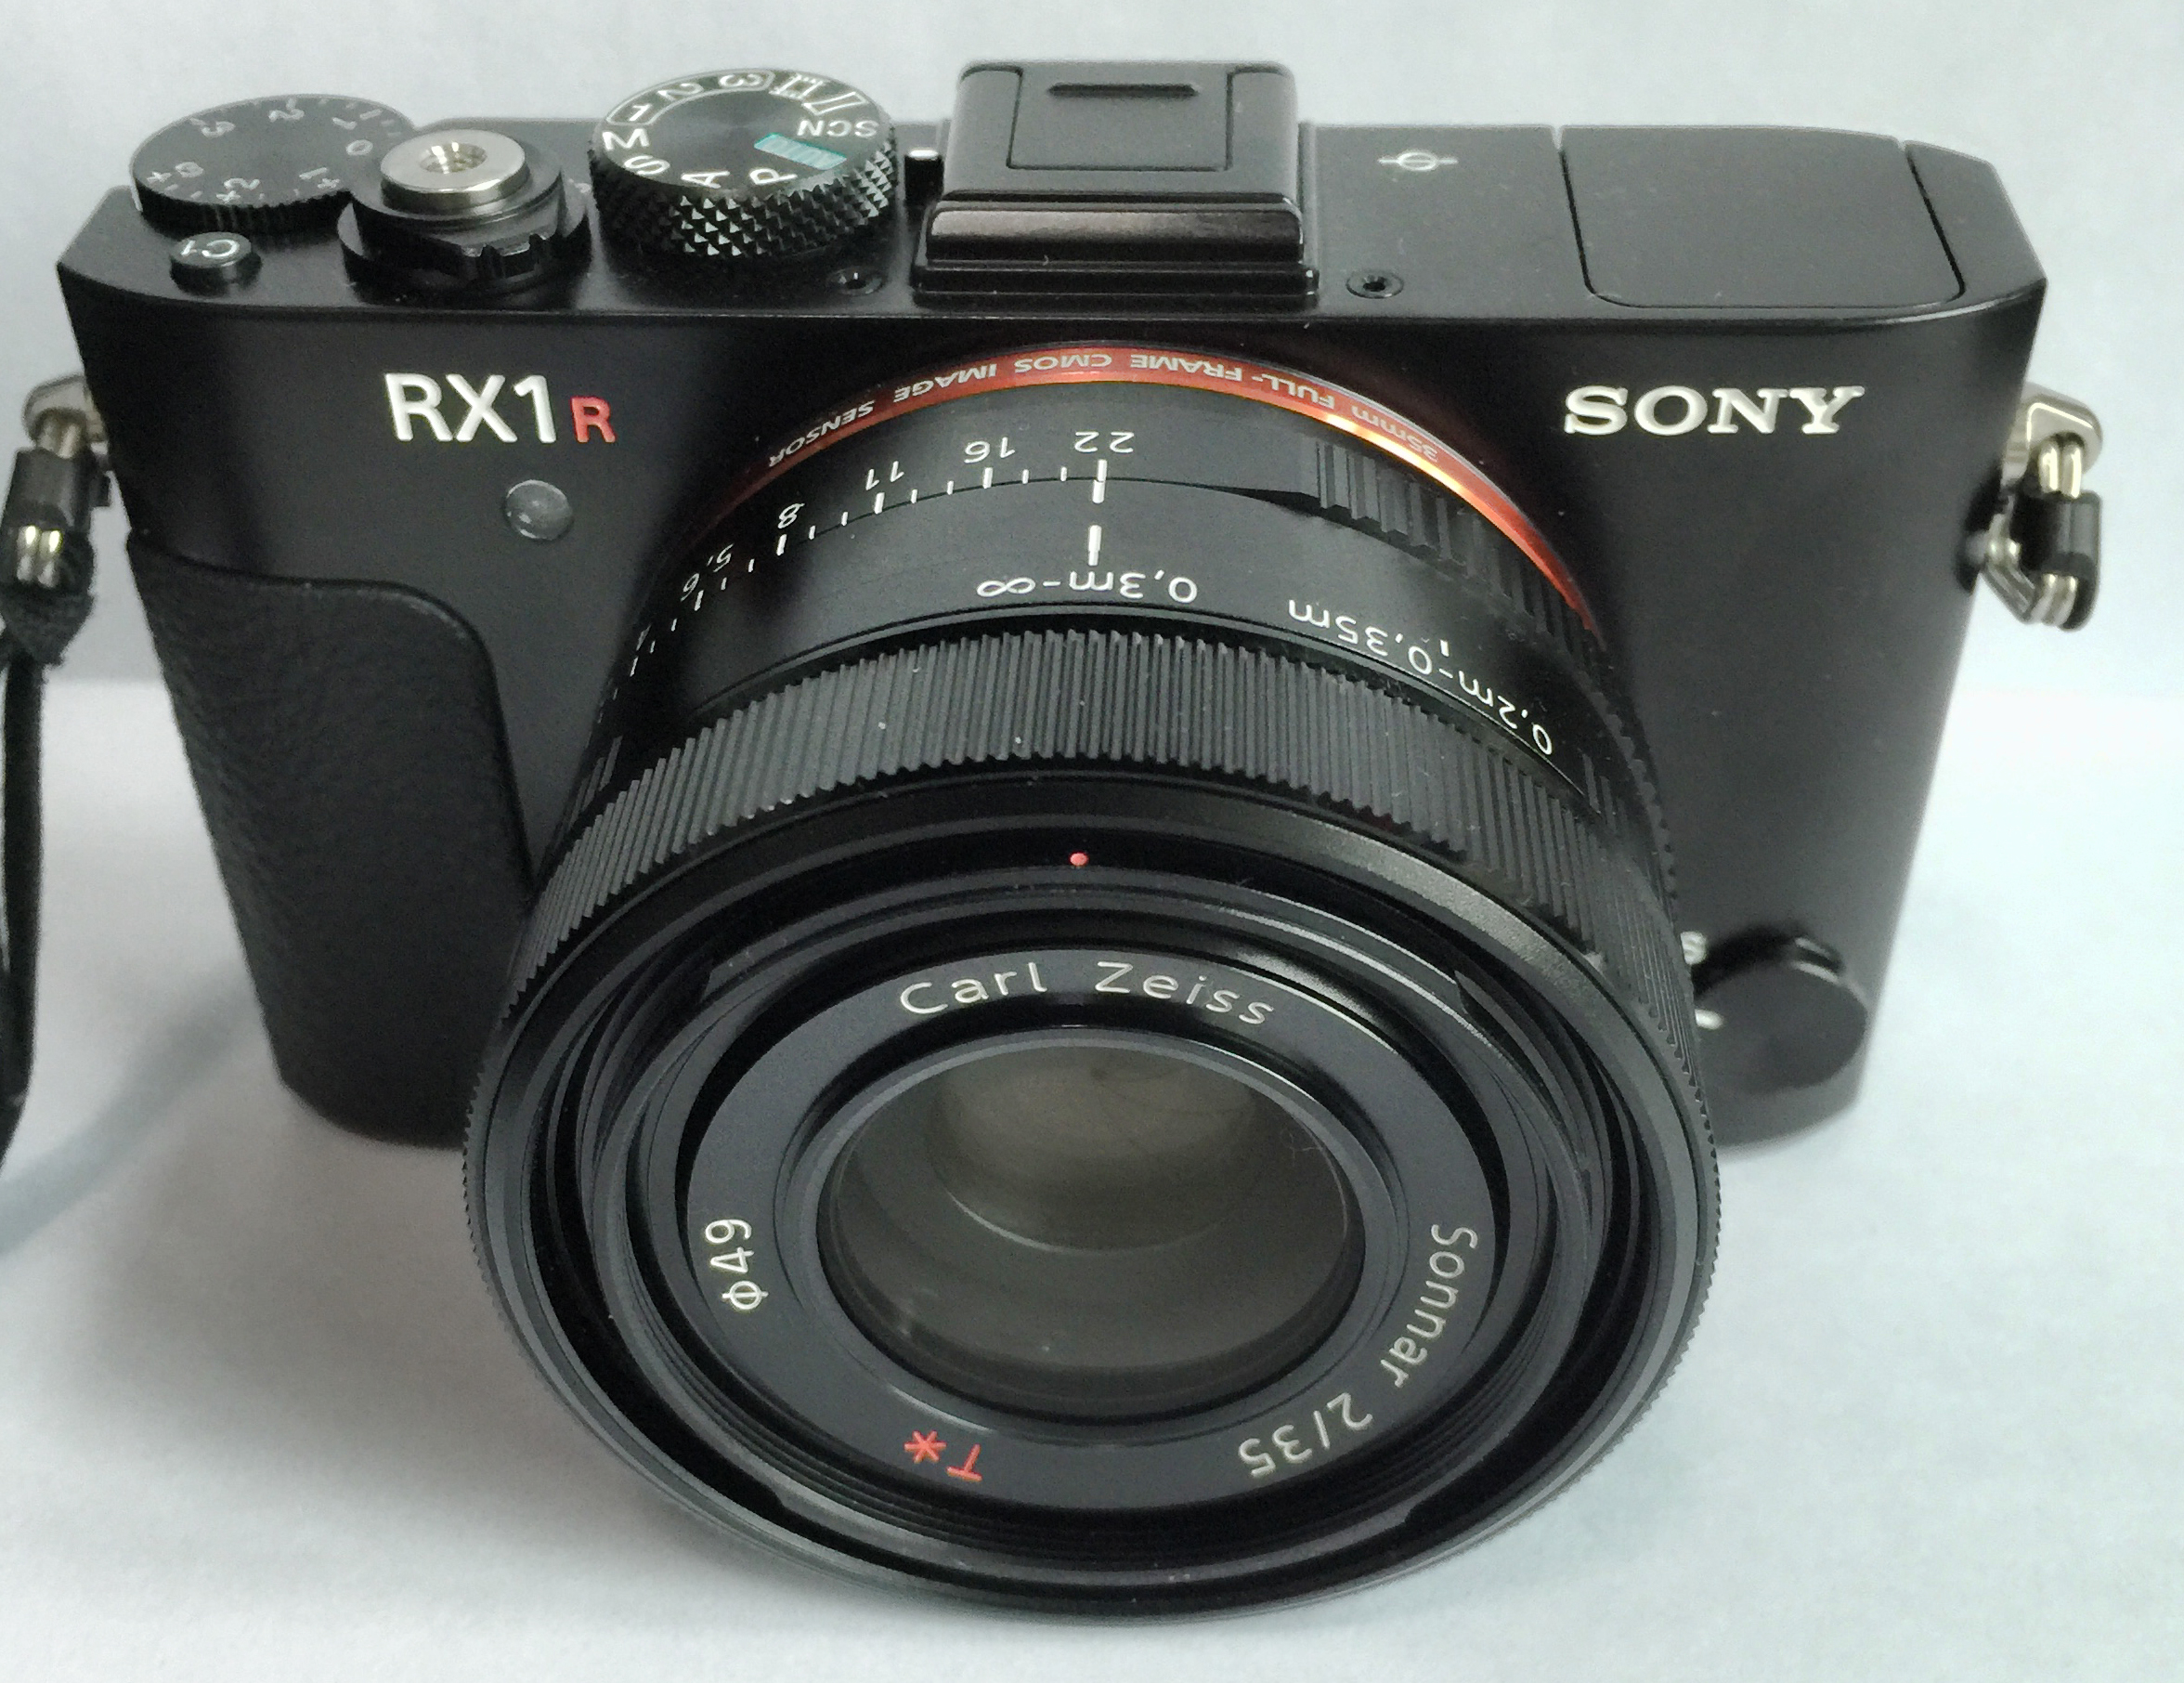 My awesome camera, Sony RX 1r Mark 2 with a 42.4 mp sensor and Carl Zeiss full frame lens -